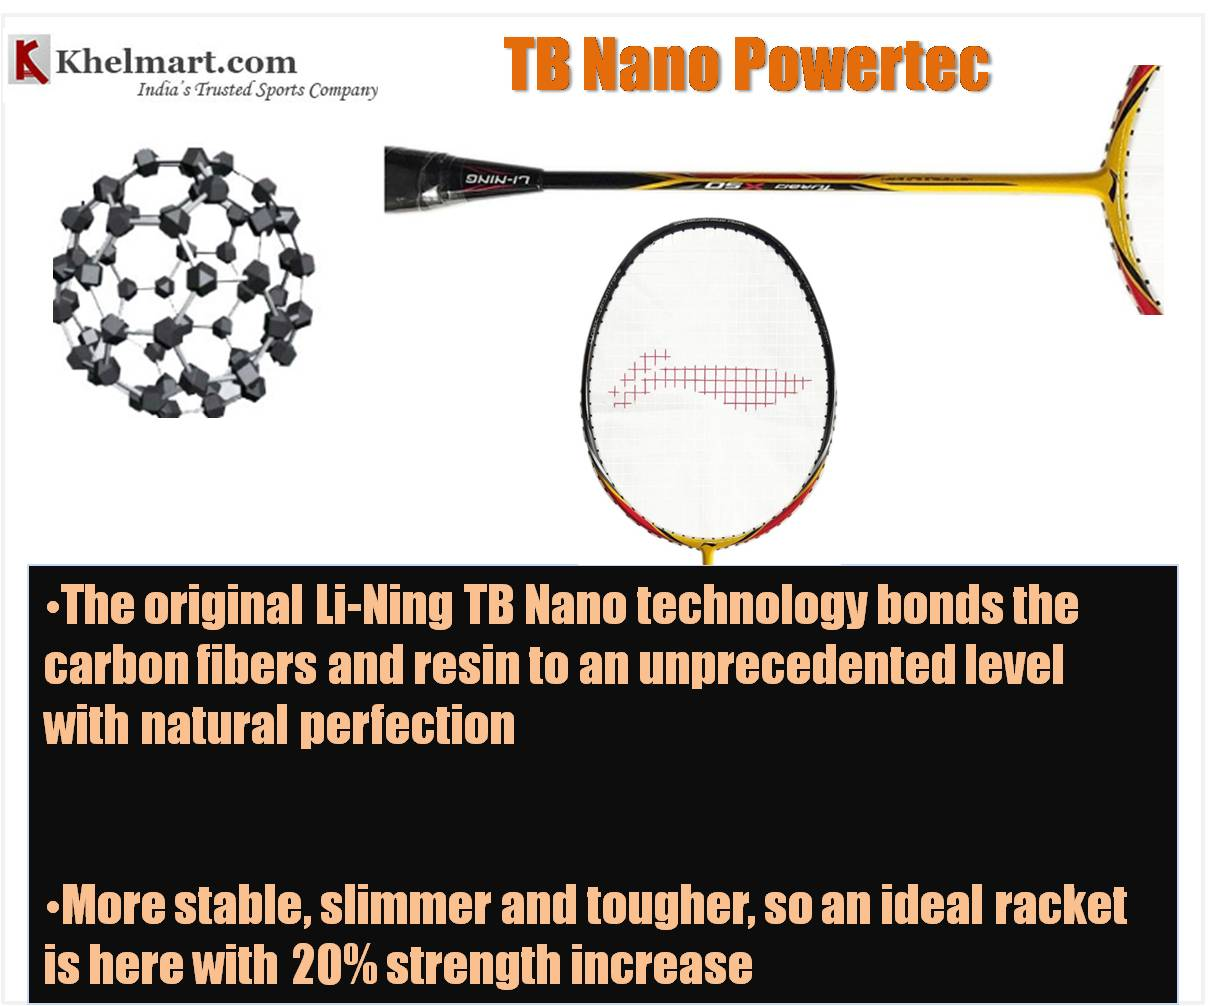 LI_Ling_Badminton_Rackets_Technology_TB_Nano_Powertec.jpg